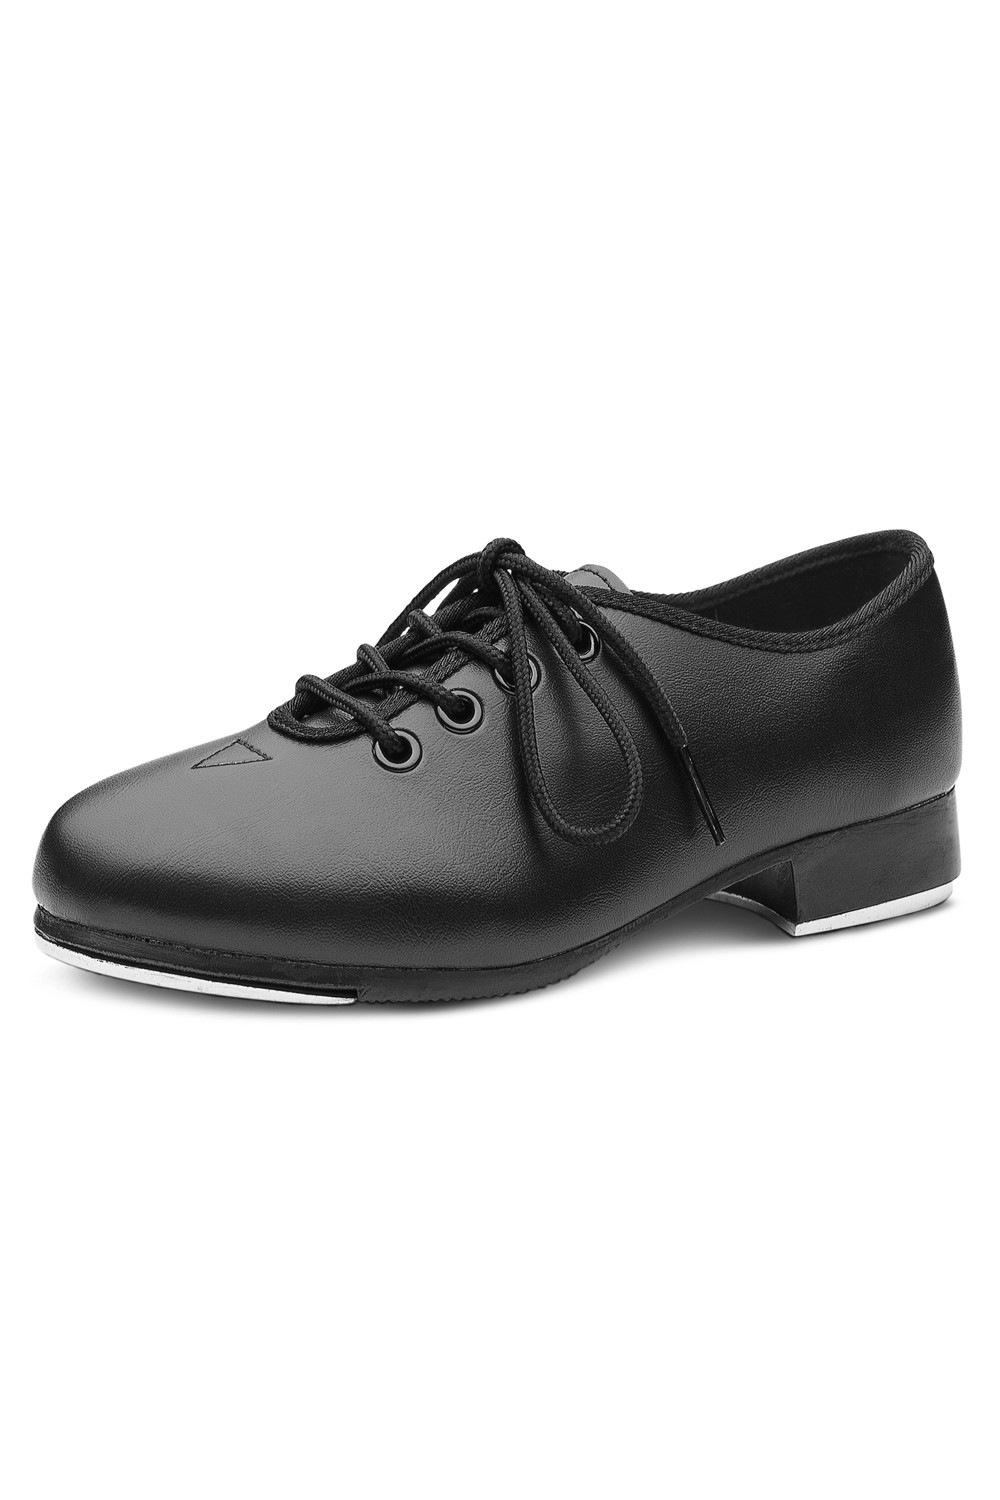 Economy Jazz Tap Women's Tap Shoes